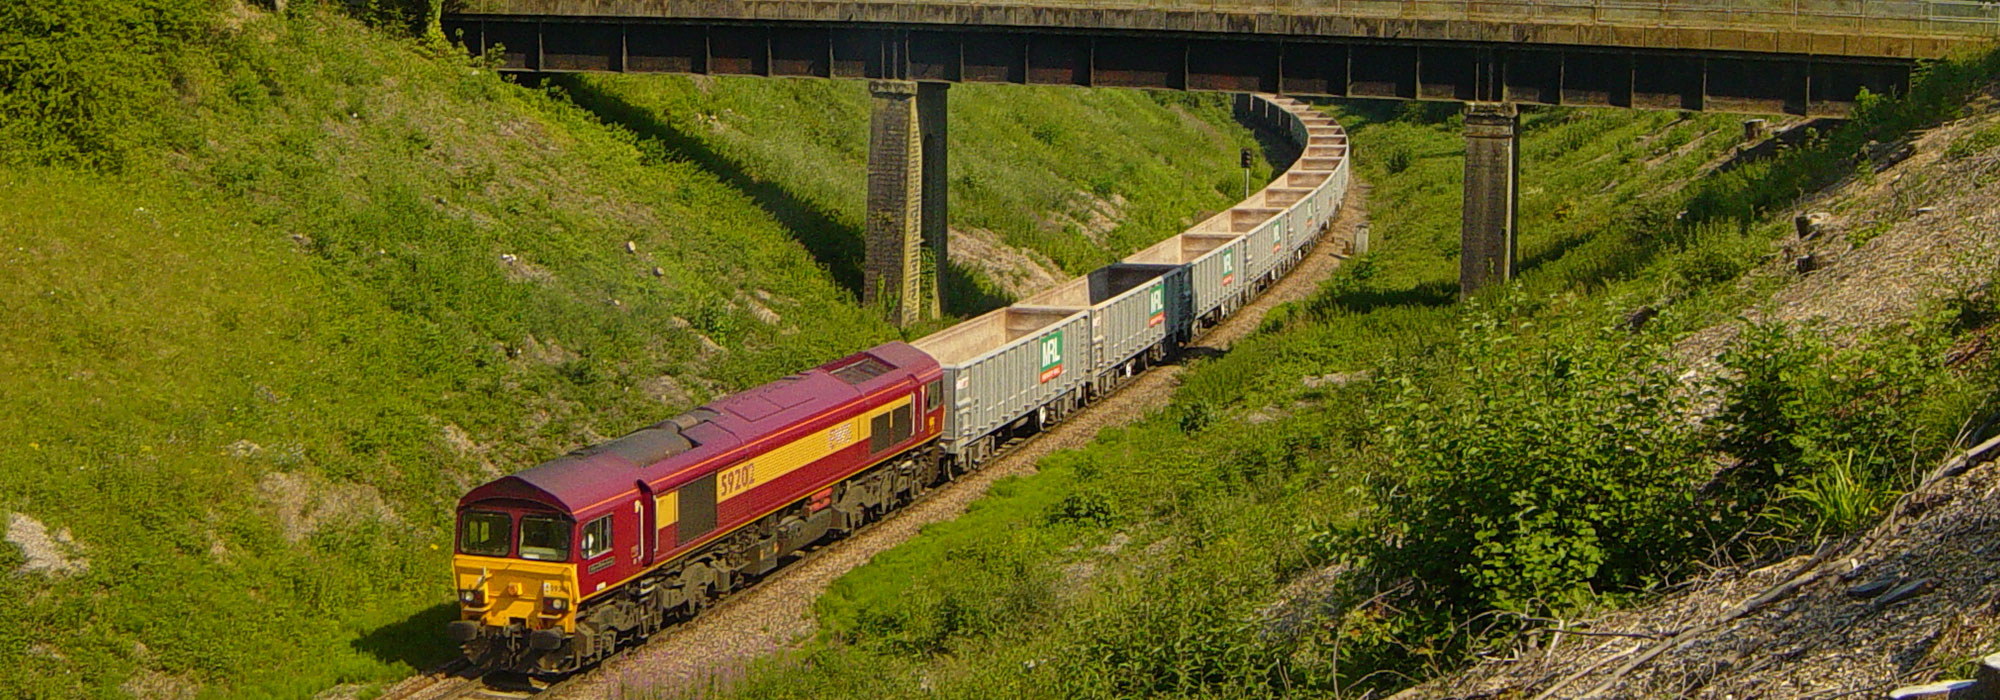 Empty-quarry-train-passing-Studley-cutting-home